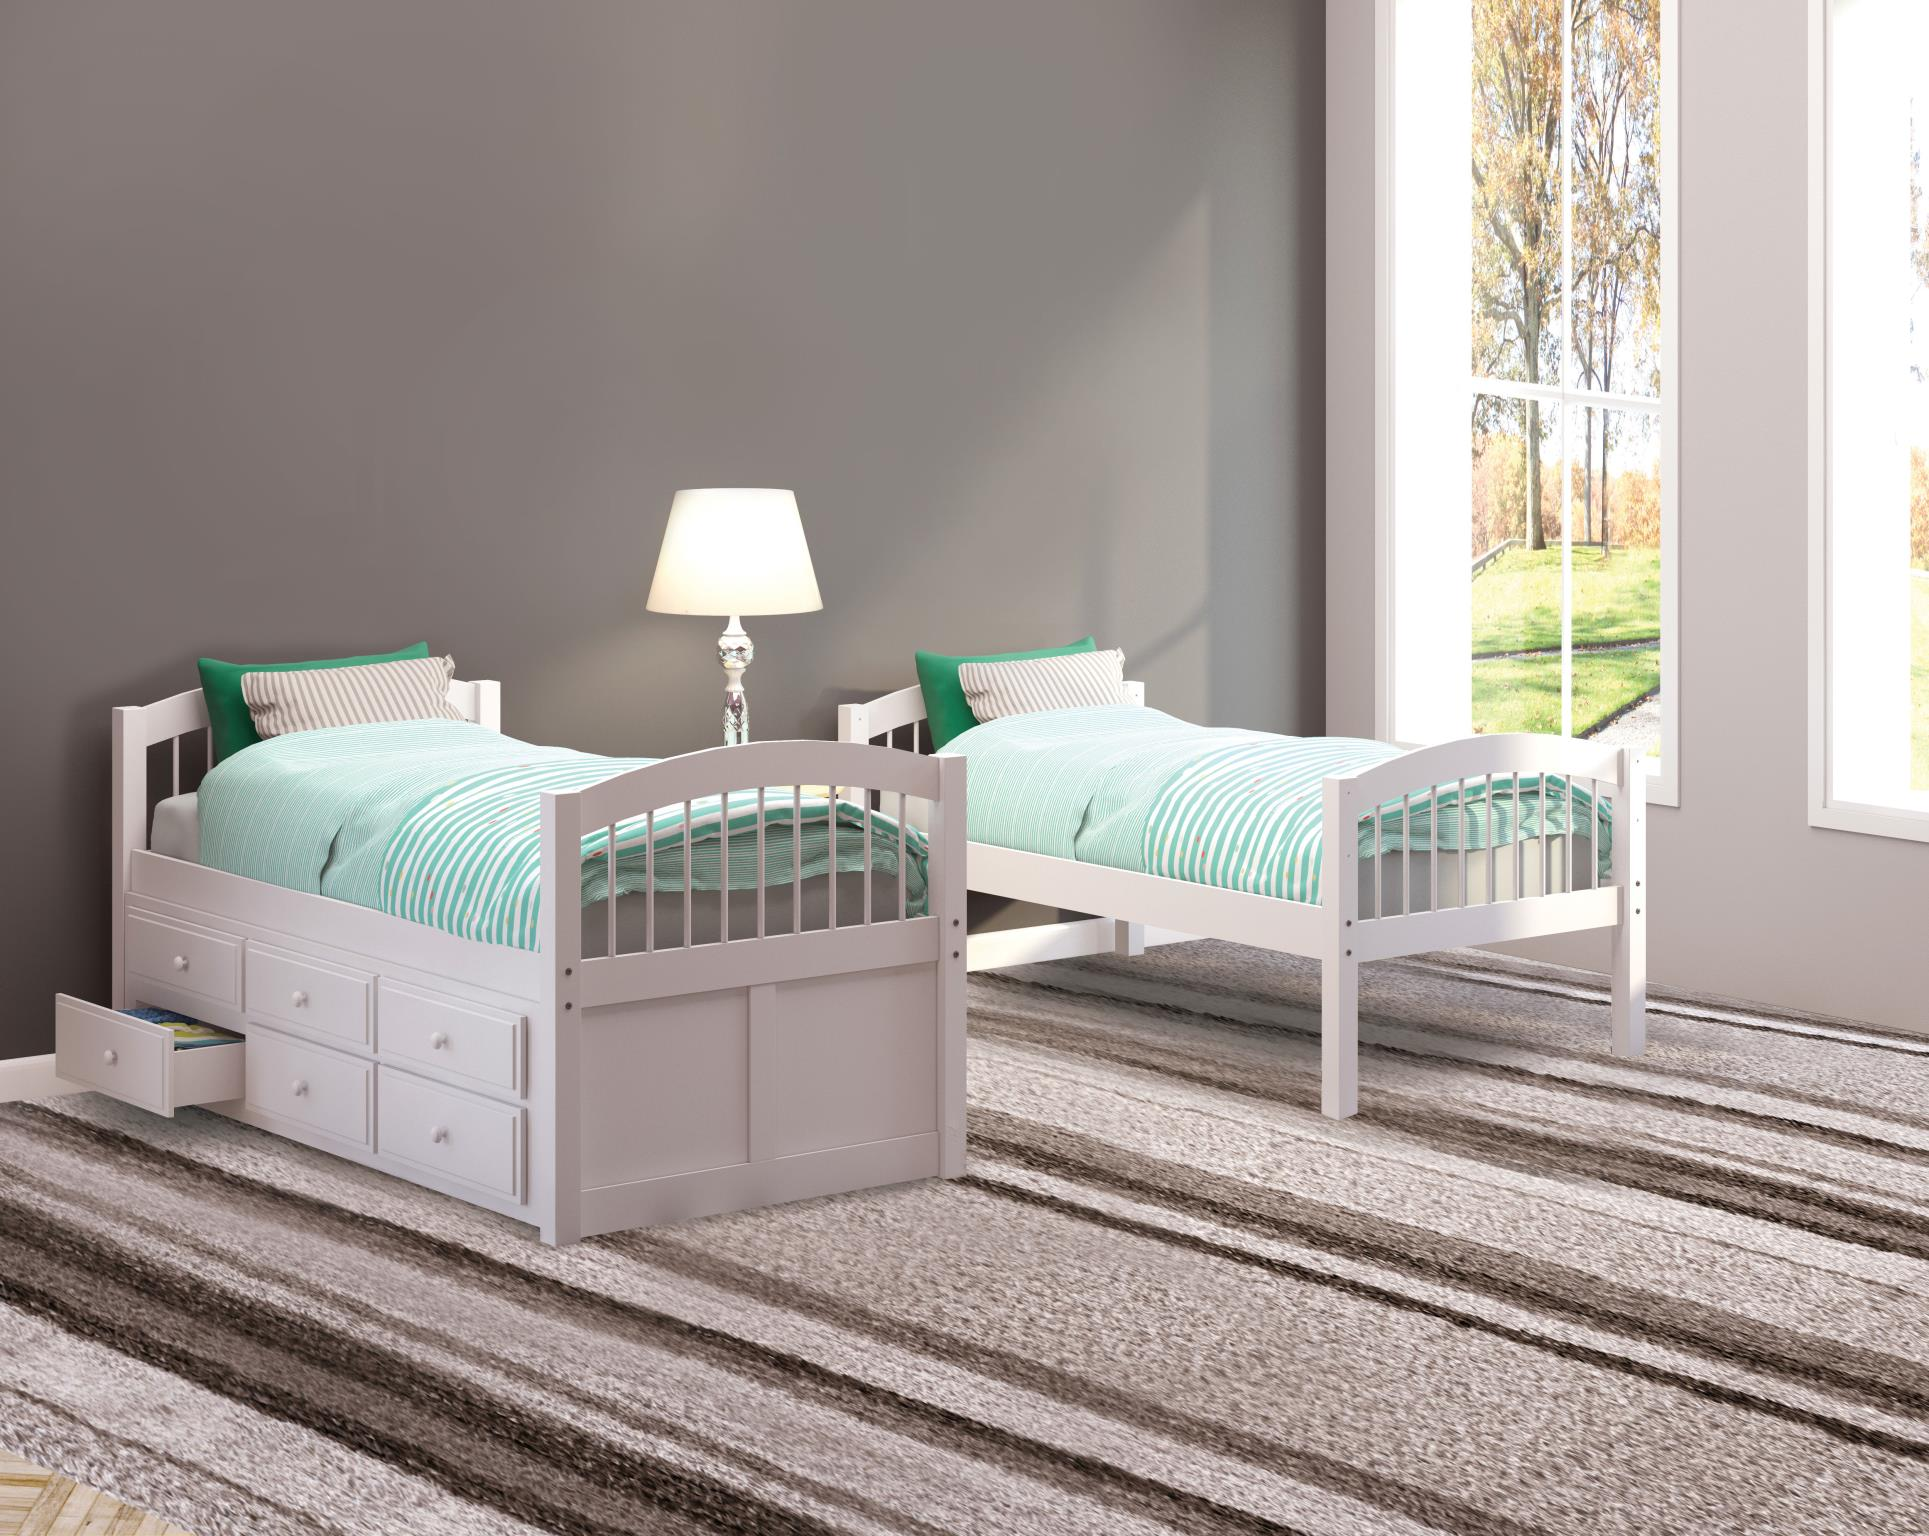 White Twin/Twin Bunk Beds Used Separately